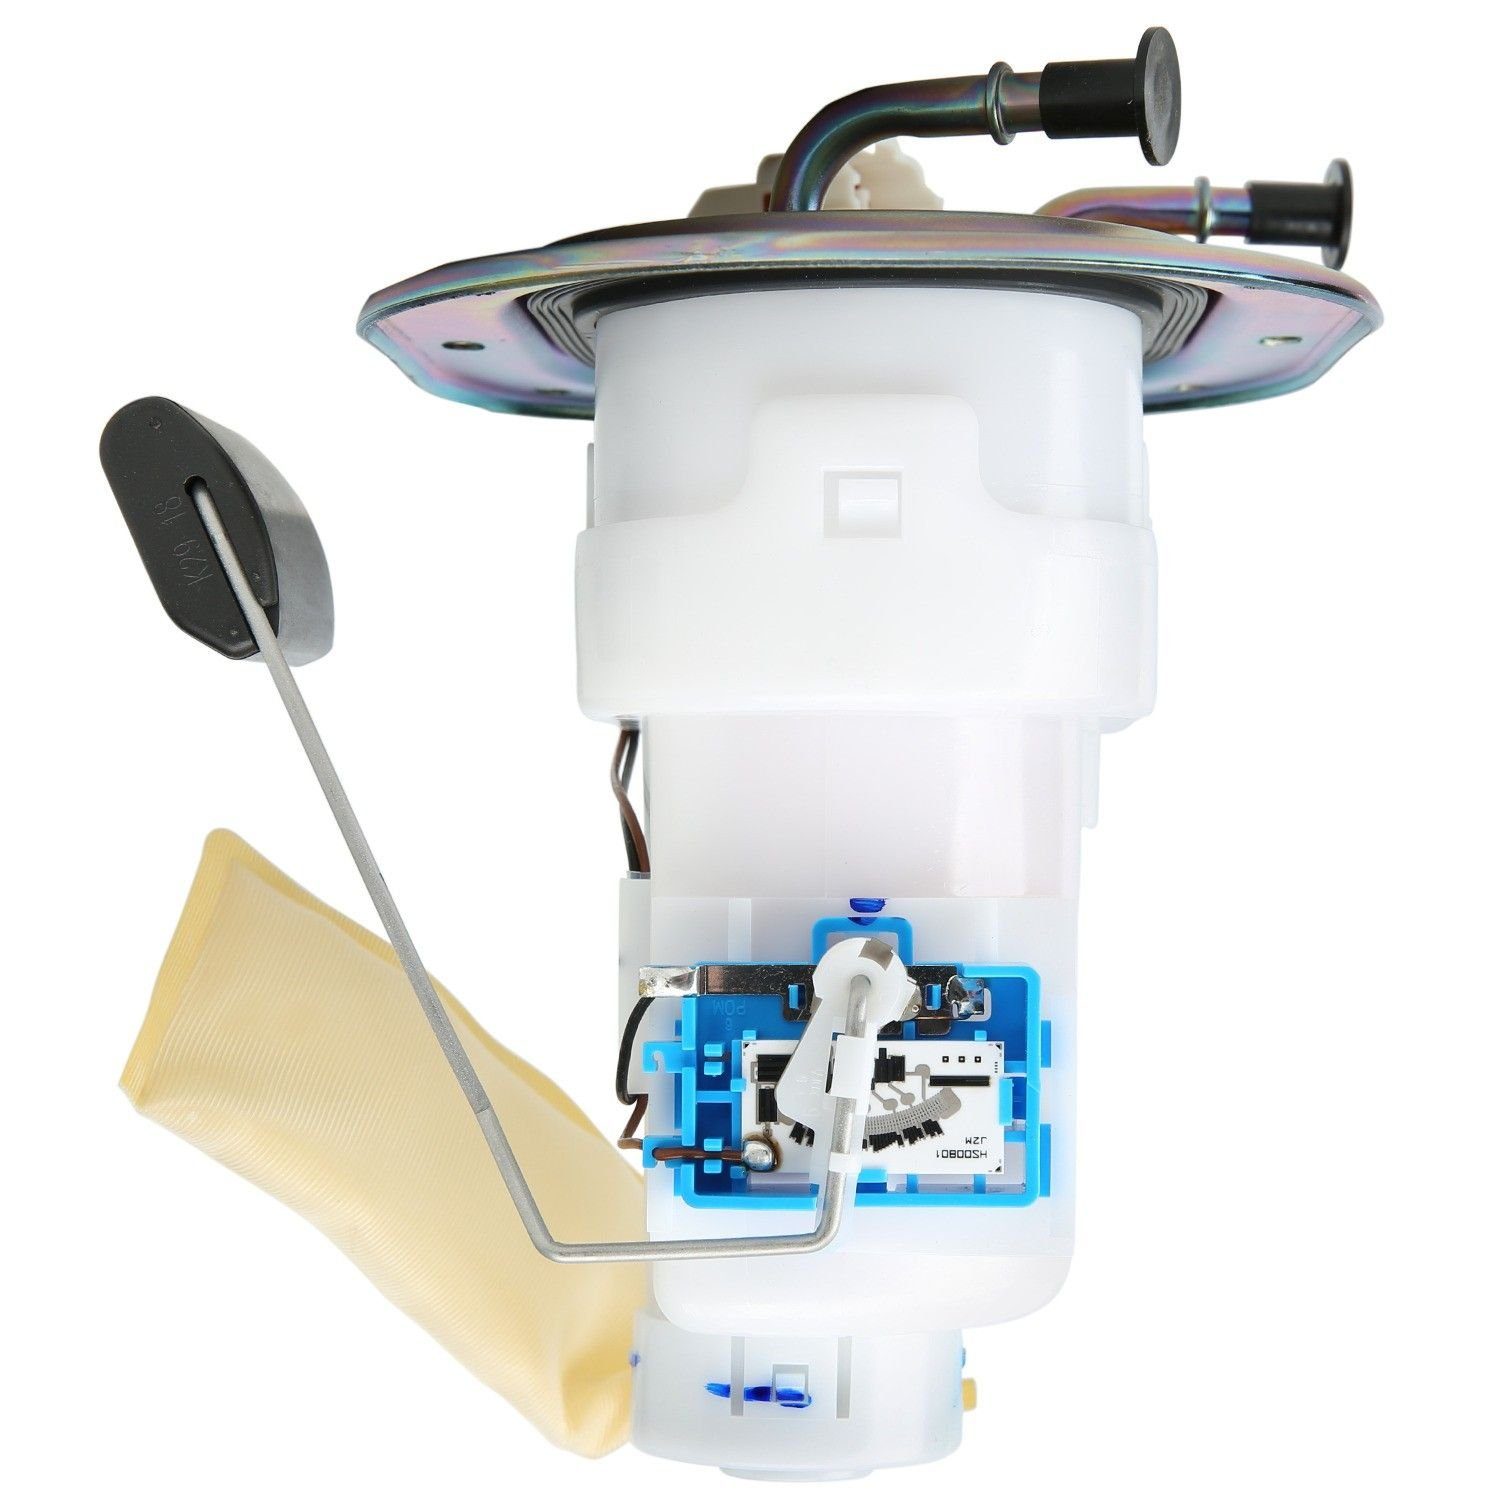 Kia Sportage Fuel Pump Module Assembly Replacement Airtex Auto 7 2005 Filter 4 Cyl 20l Delphi Fg1261 External Strainer Once New Has Been Installed And Tank